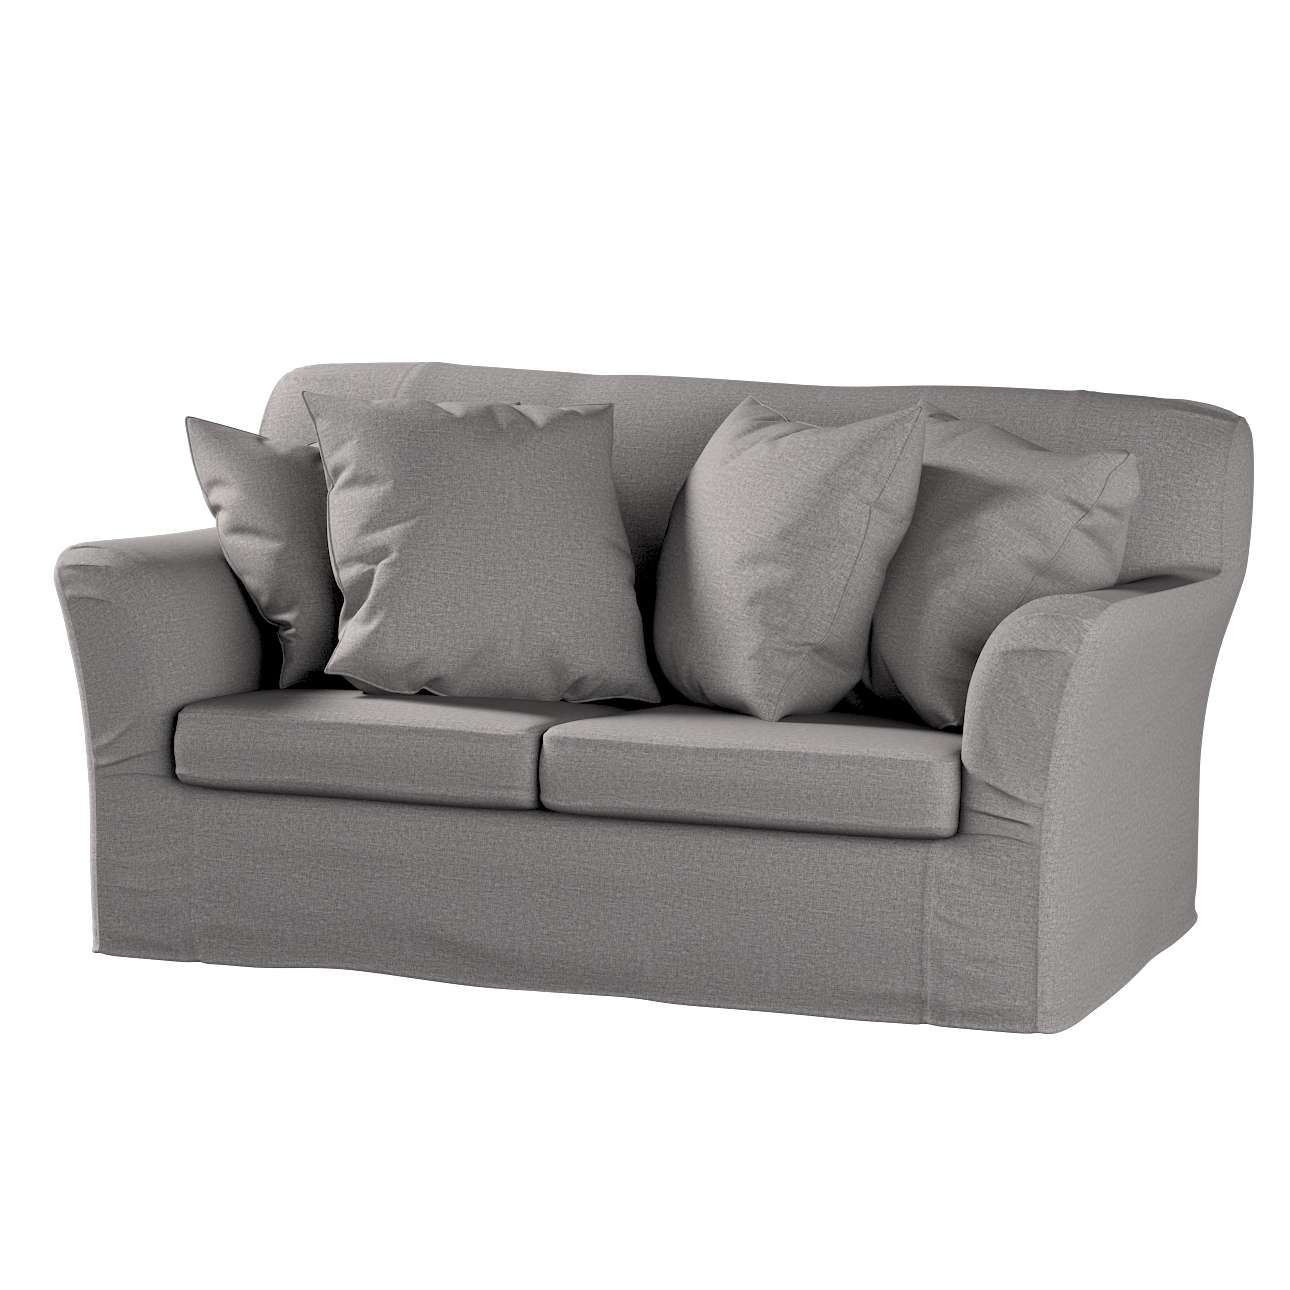 Tomelilla 2-seater sofa cover Tomelilla 2-seat sofa in collection Edinburgh, fabric: 115-81